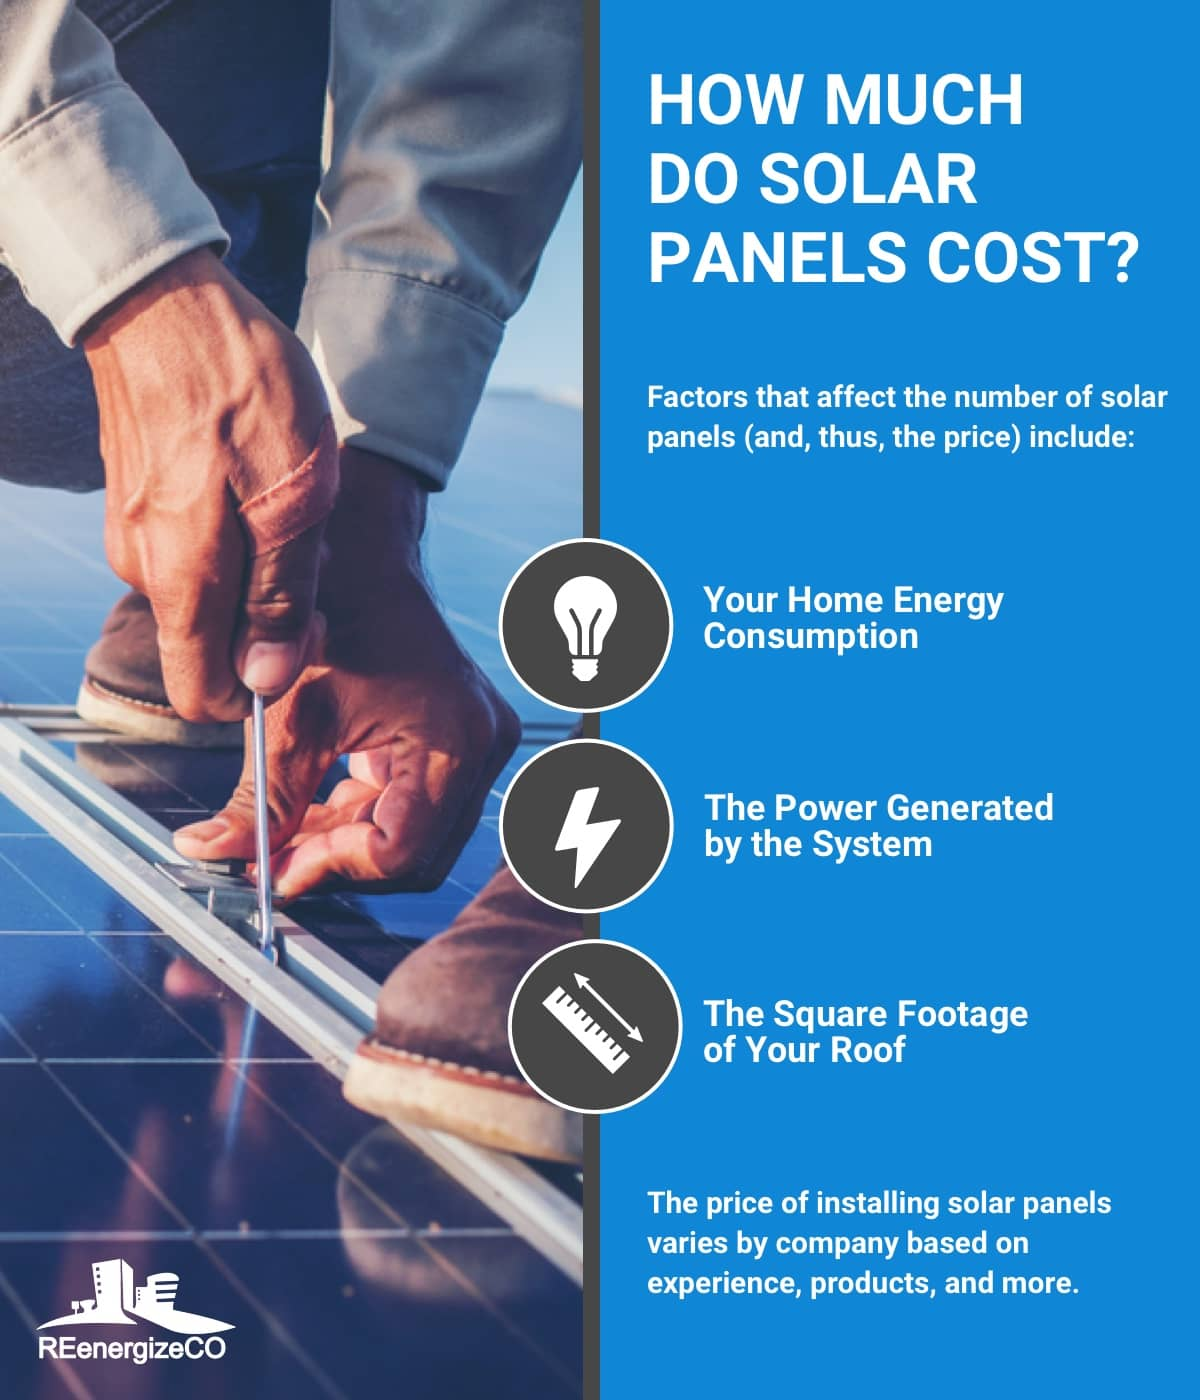 How Much Will I Pay for Solar Panels? | REenergizeCO